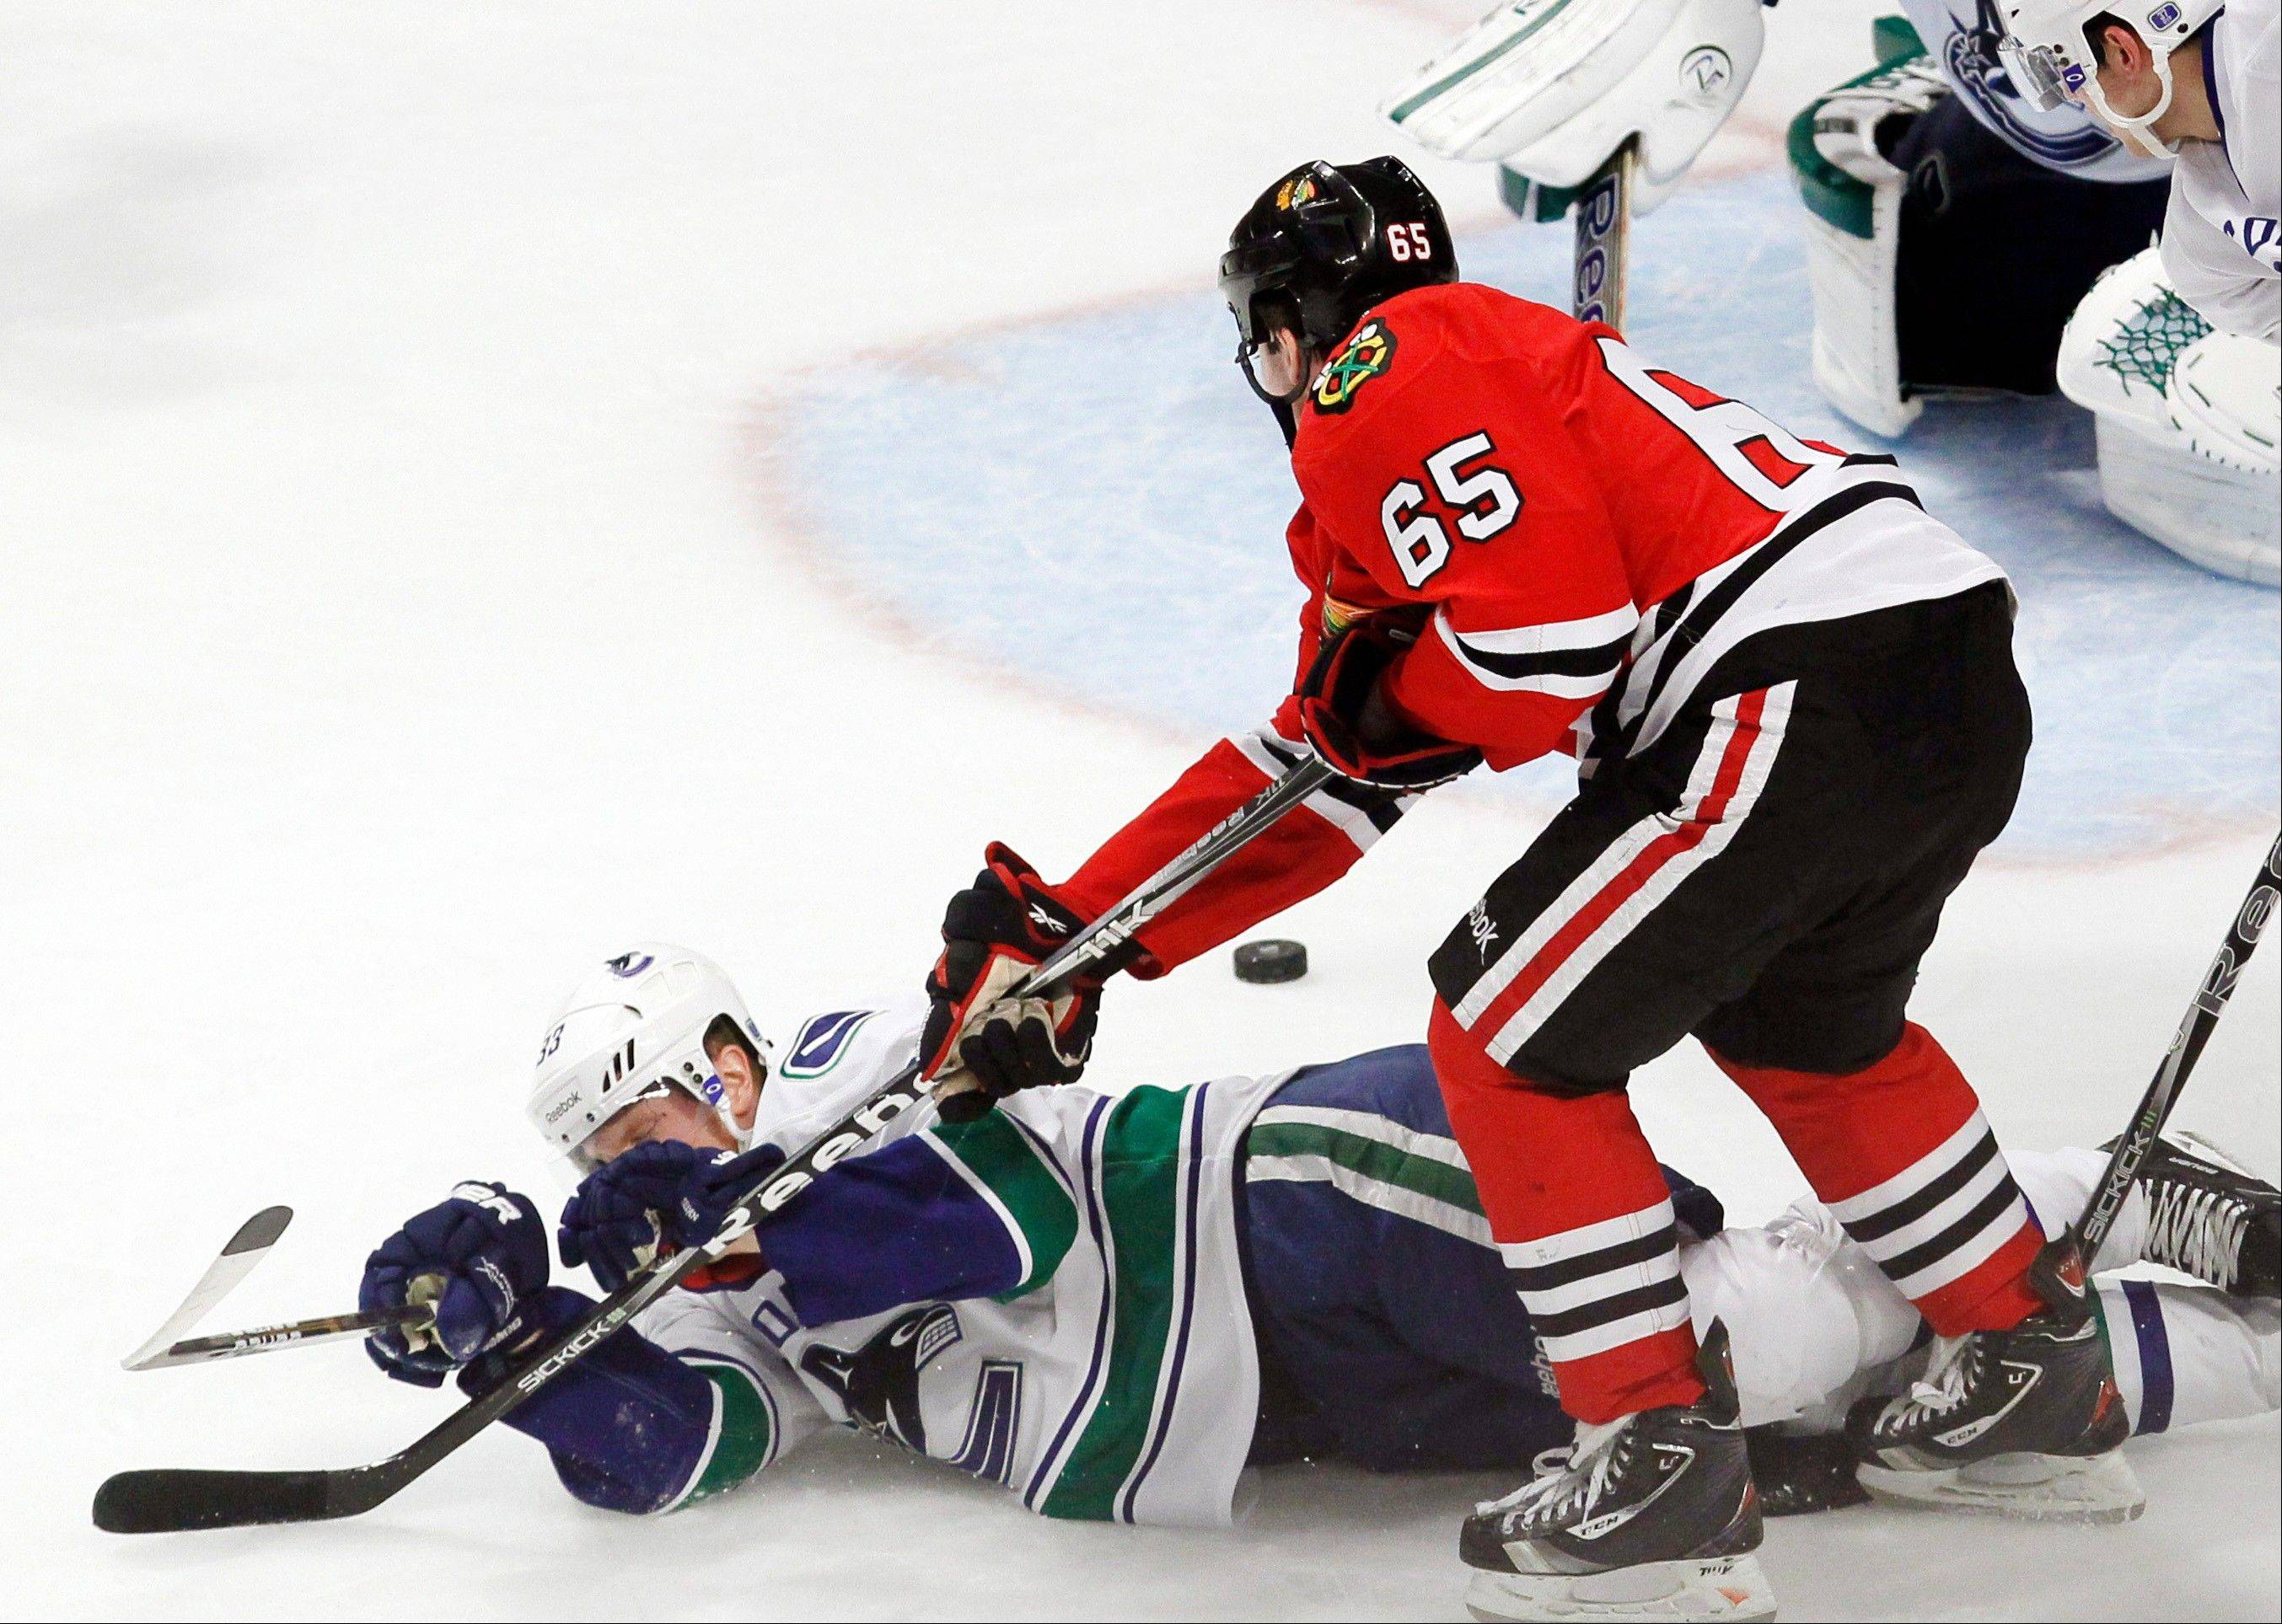 Vancouver Canucks center Henrik Sedin tried everything to stop Blackhawks winger Andrew Shaw when they met on the ice on March 21.